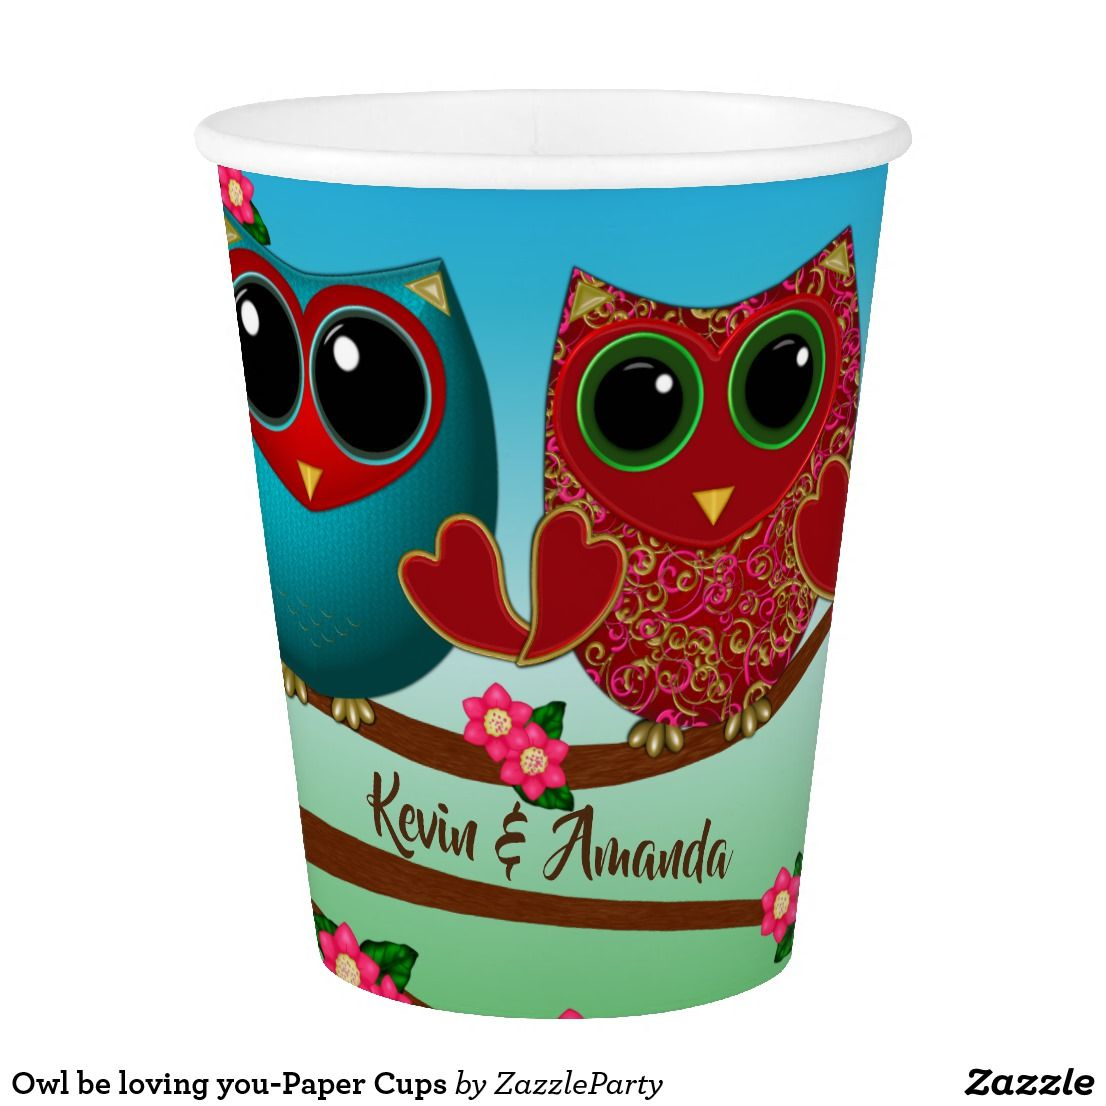 Owl be loving you-Paper Cups | Zazzle Party Supplies! | Pinterest